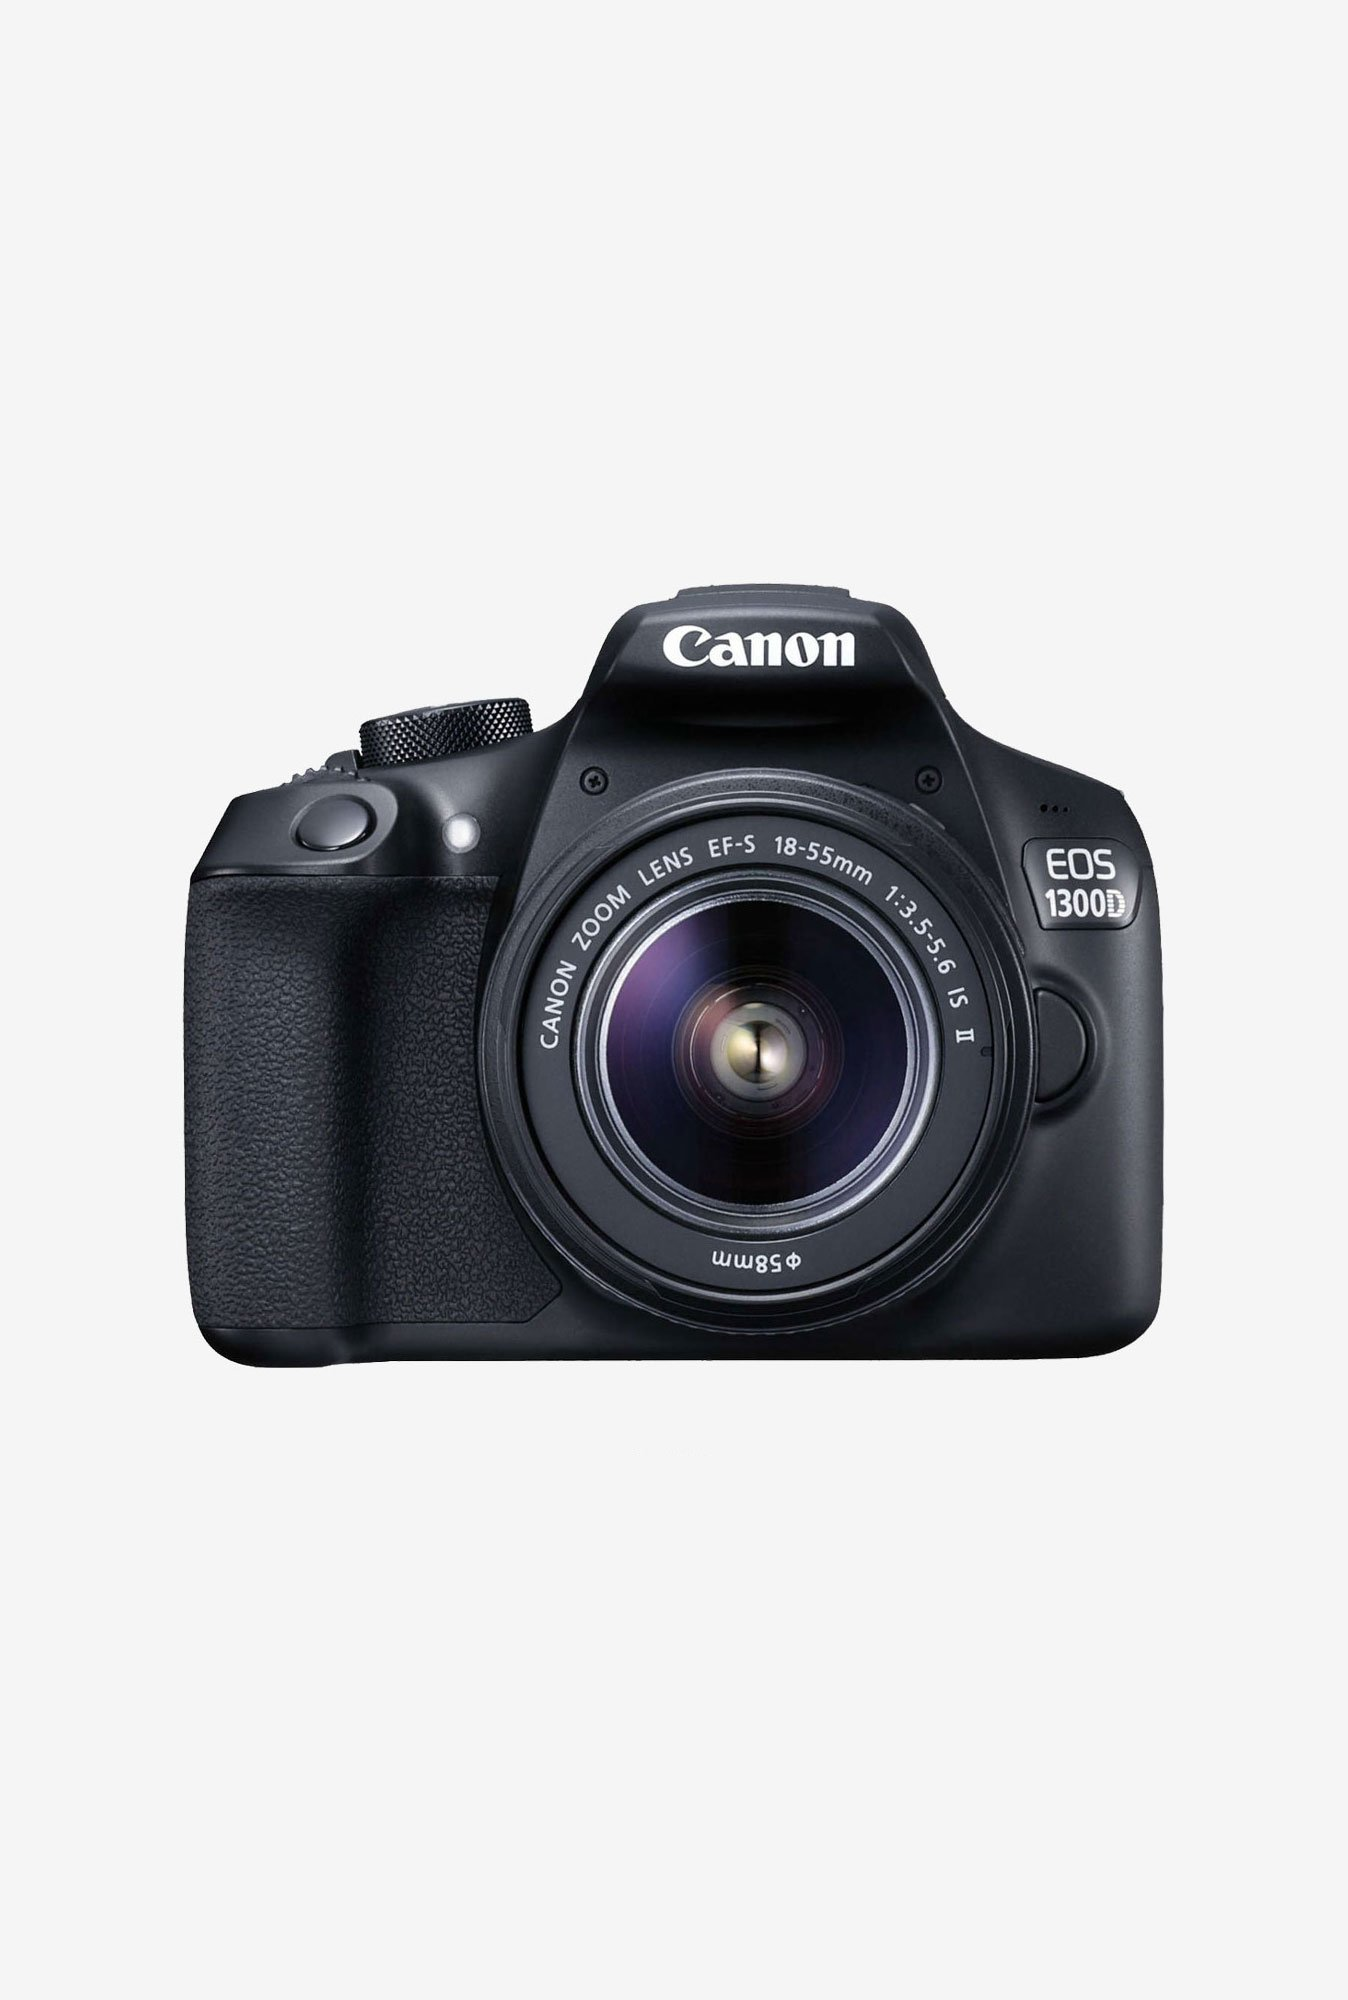 Canon EOS 1300D (EF S18-55 IS II Lens) DSLR Camera